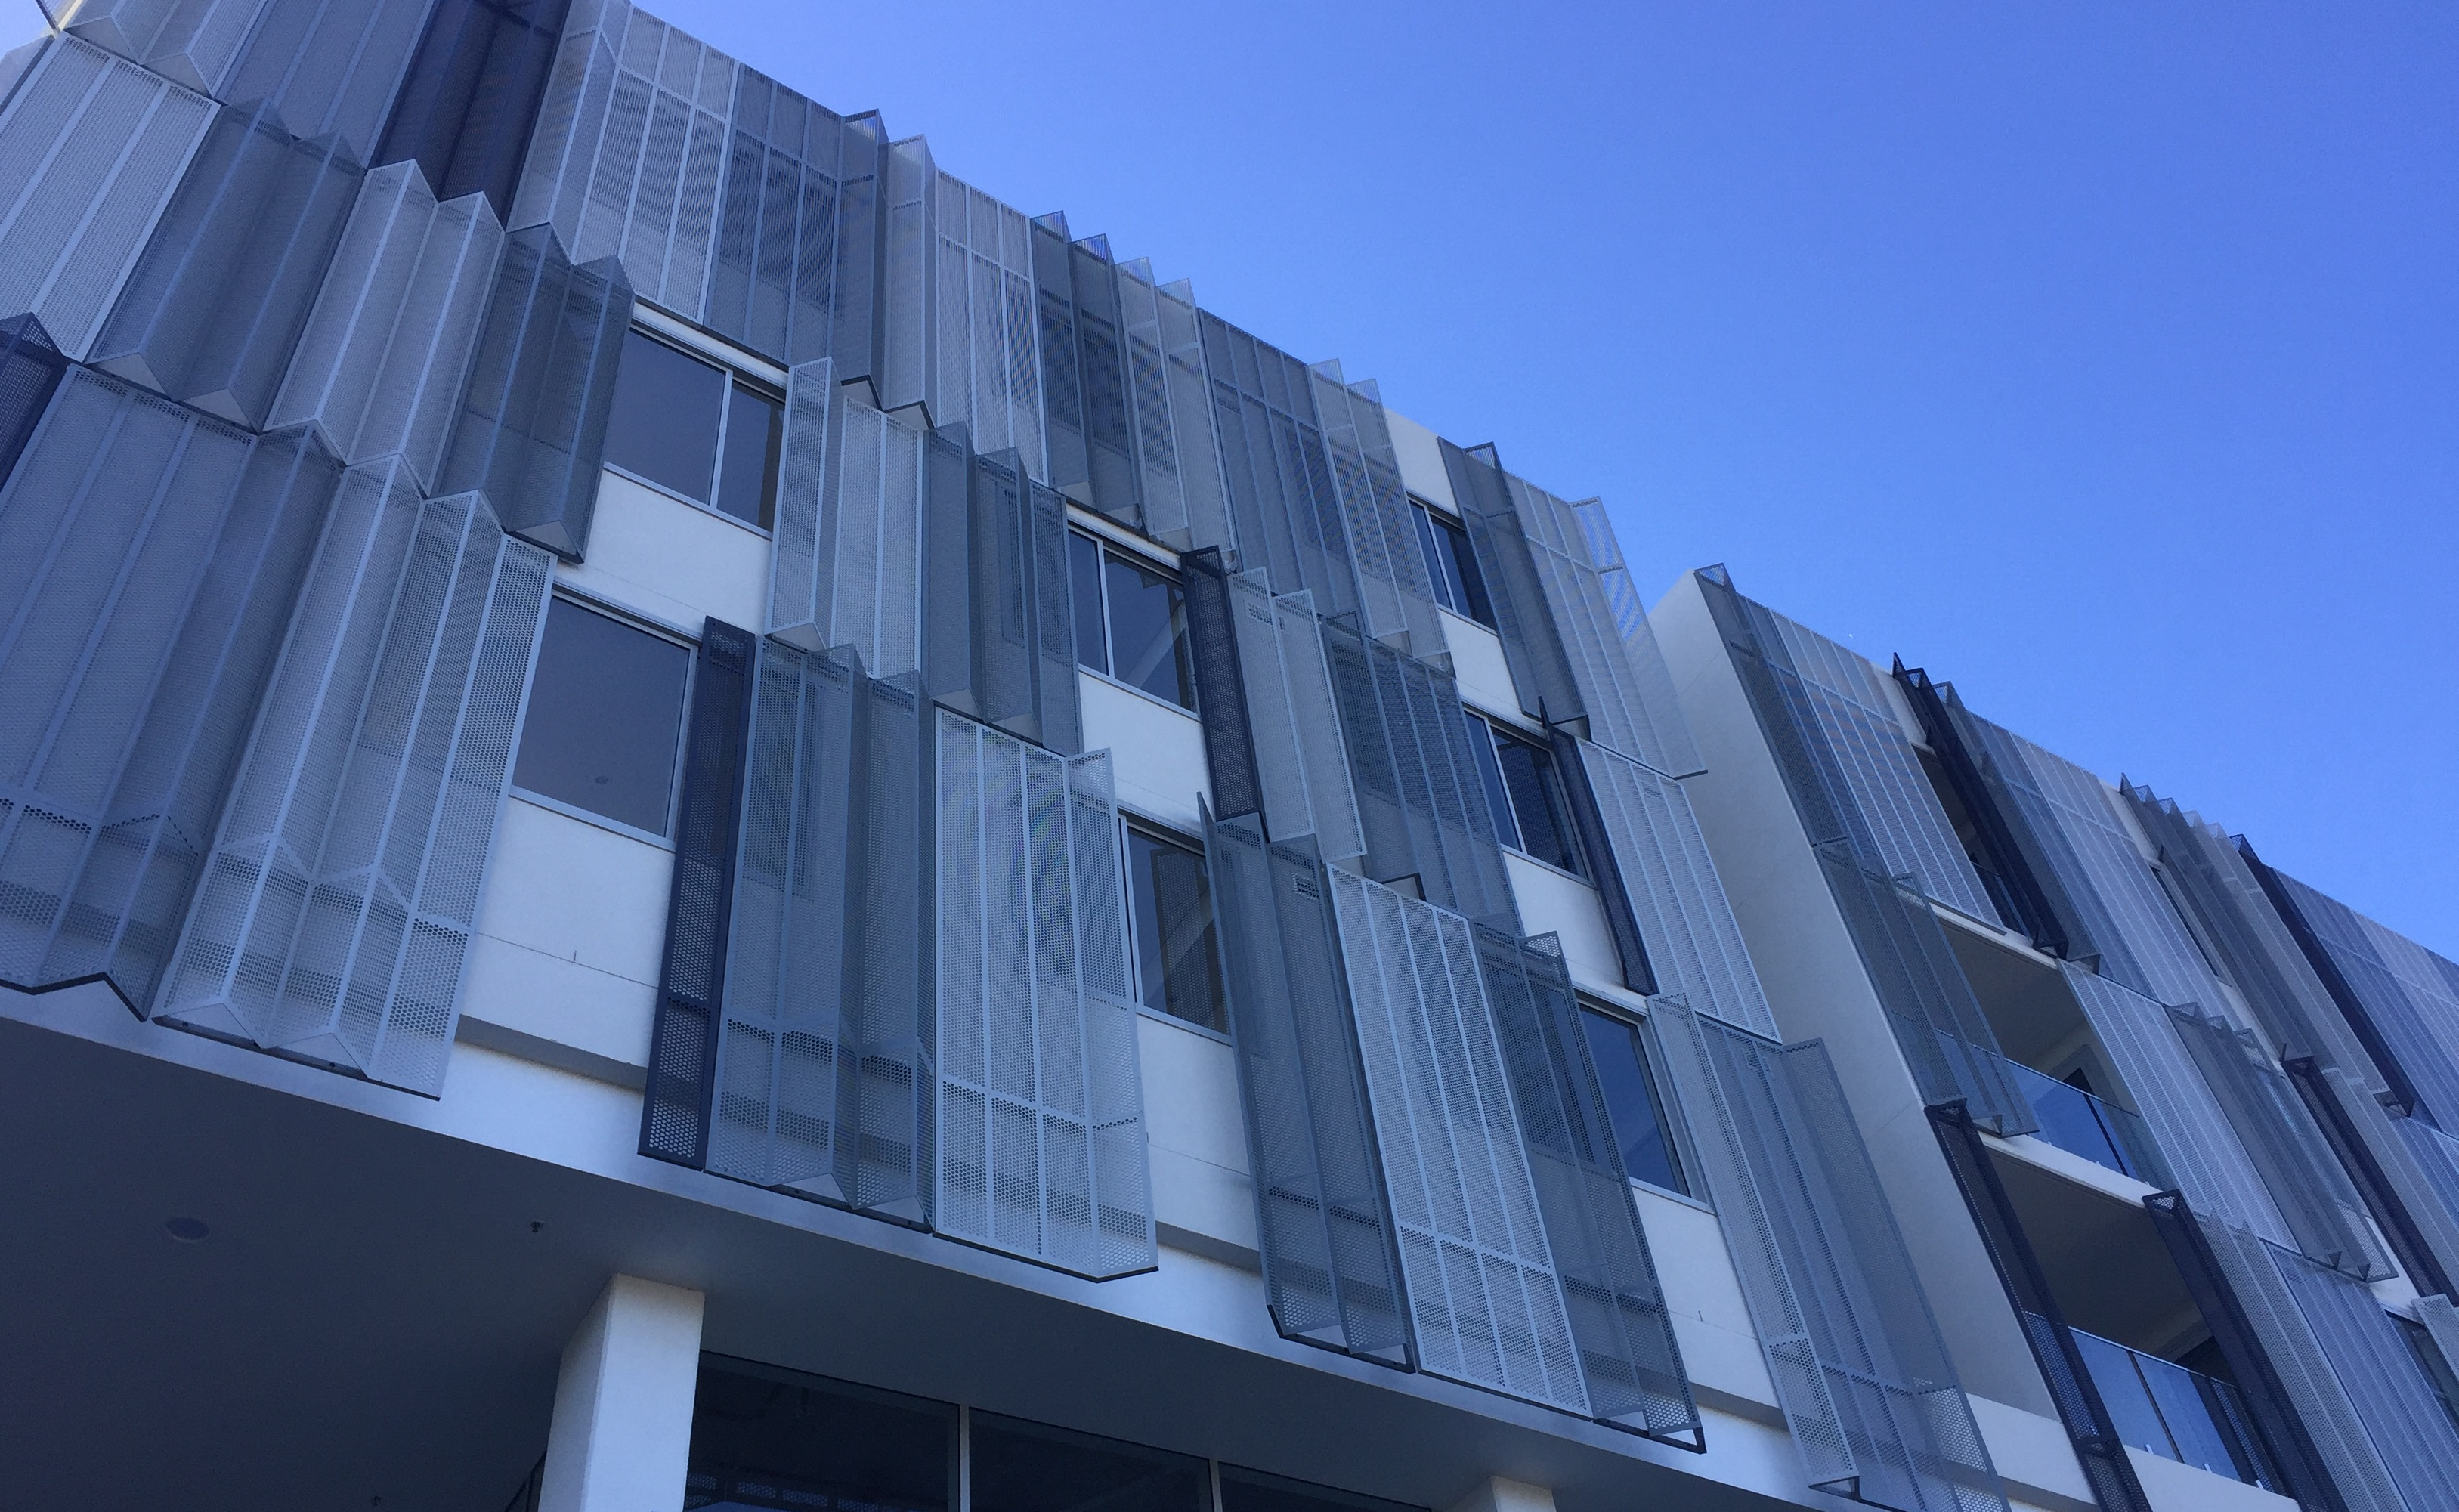 Perforated metal projects 2018 - Infinity building canterbury